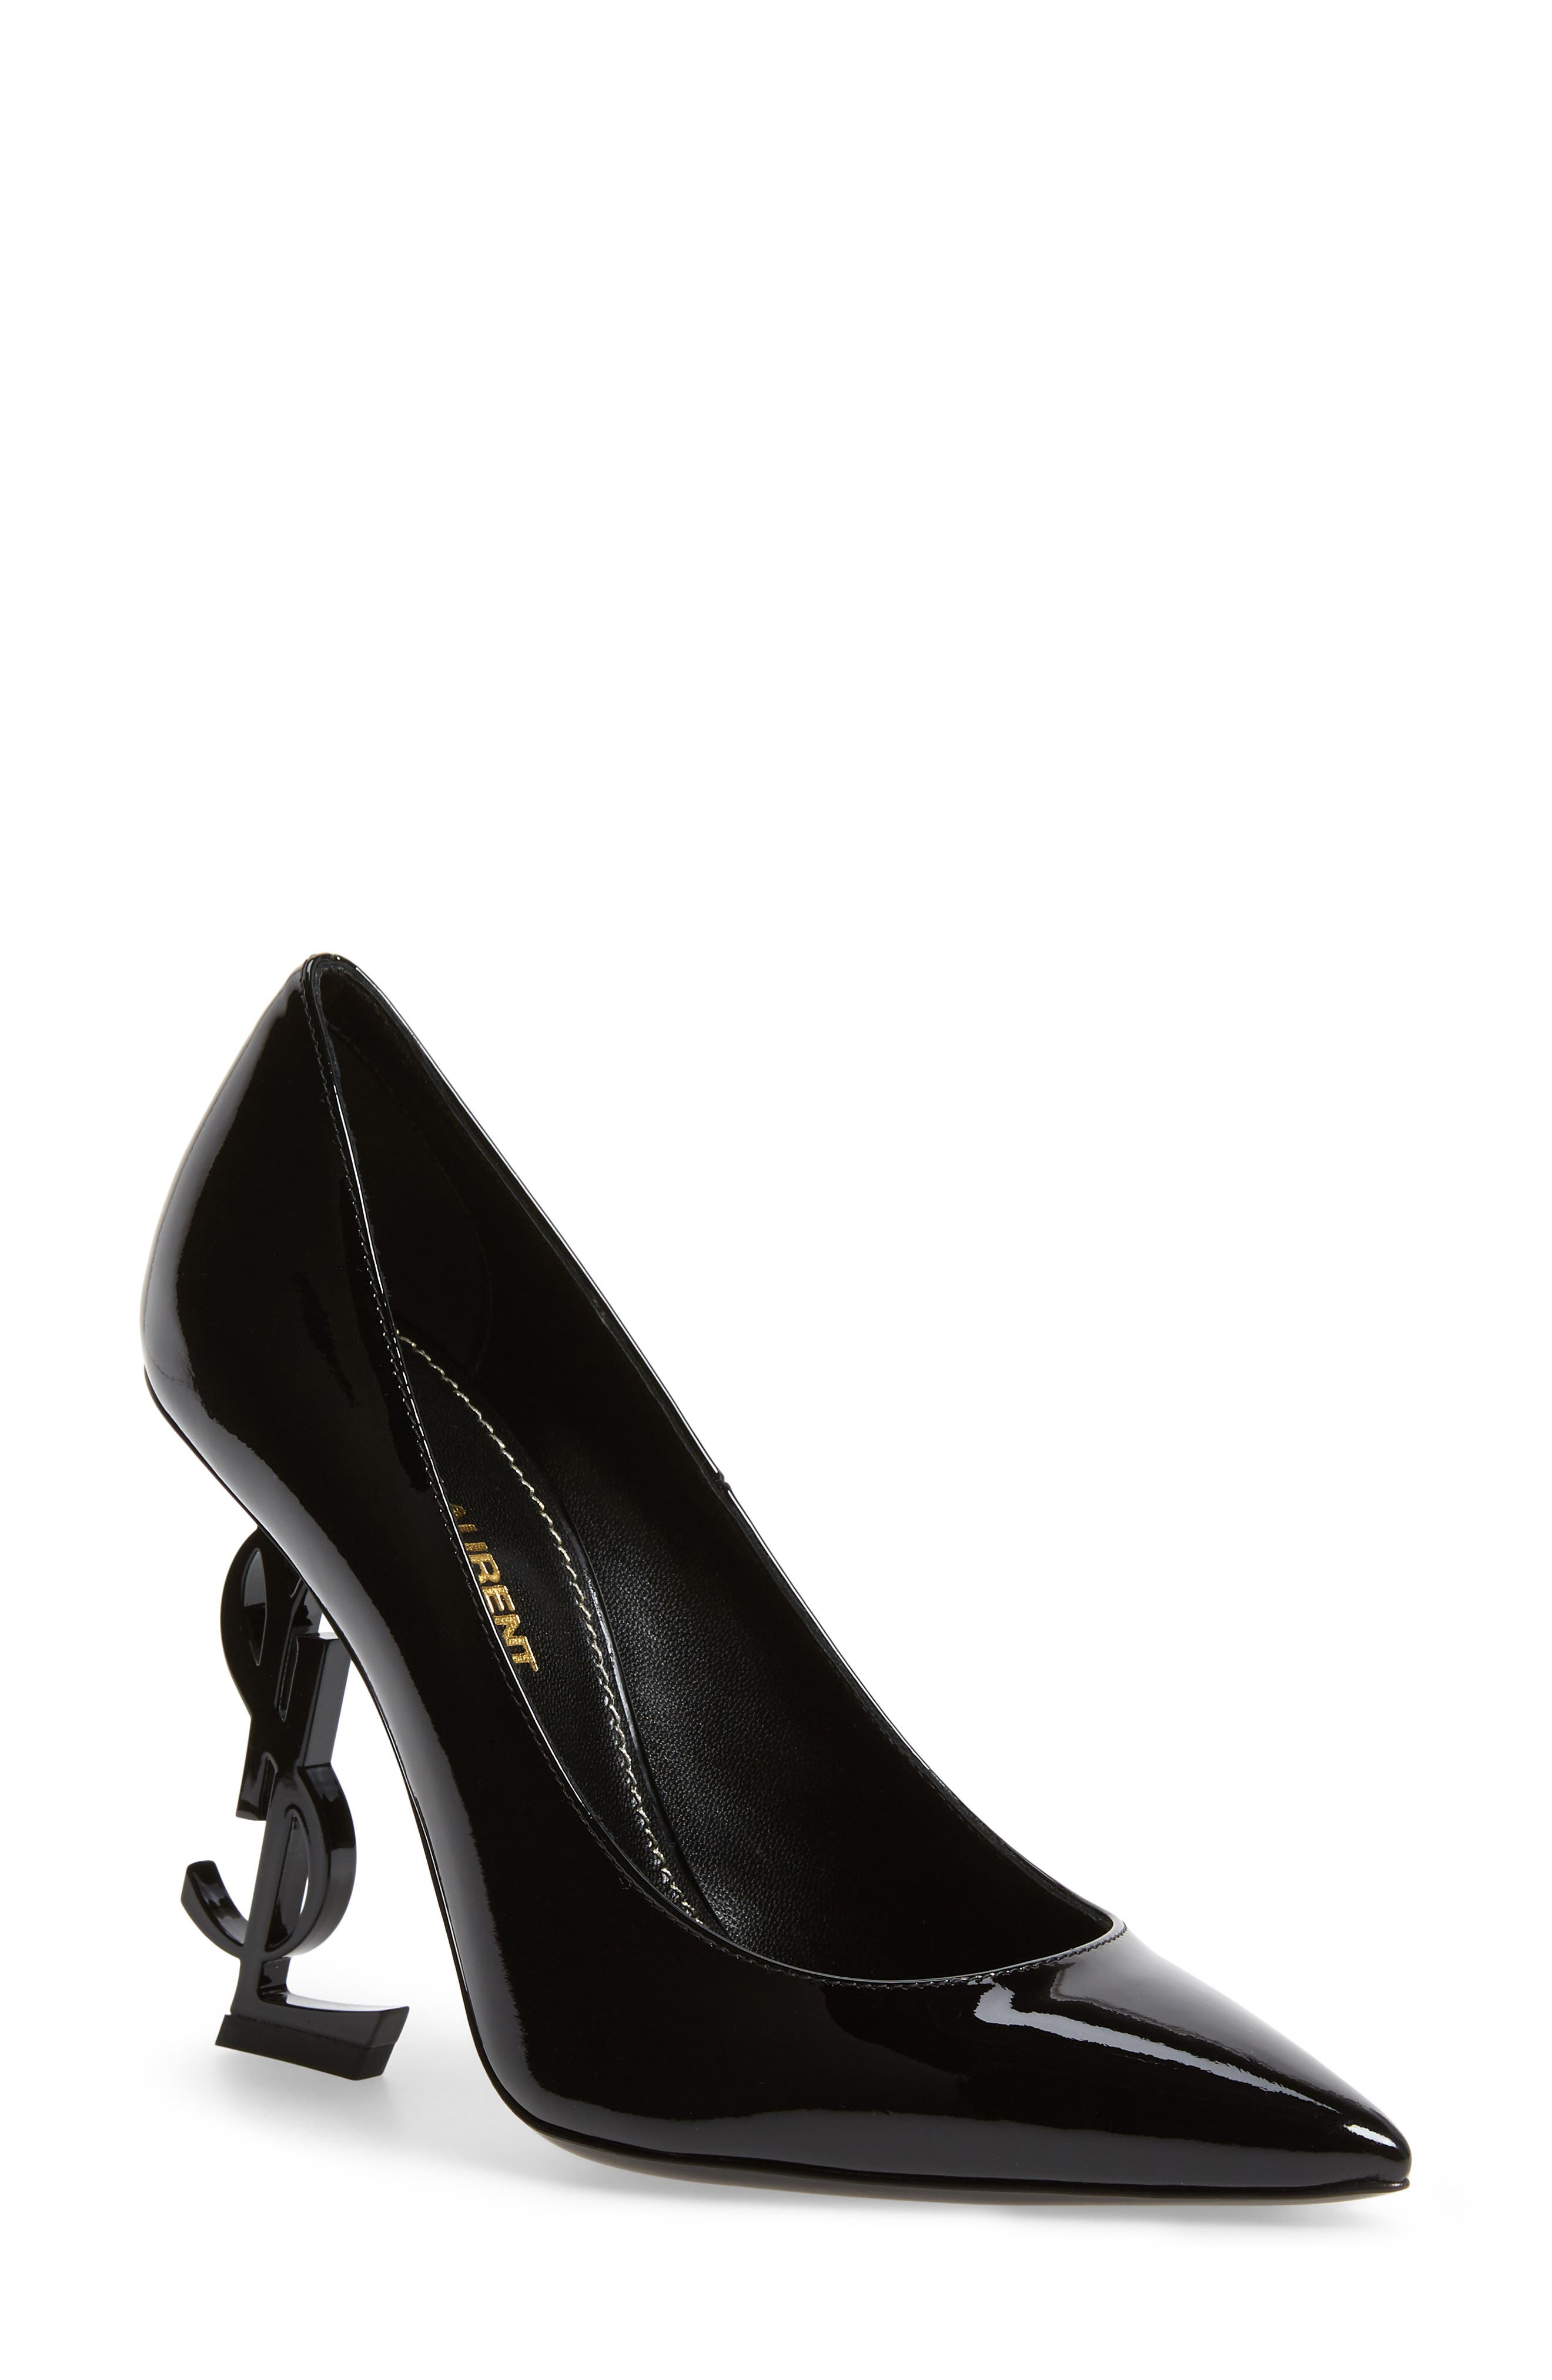 Opyum YSL Pointy Toe Pump,                         Main,                         color, BLACK/ BLACK